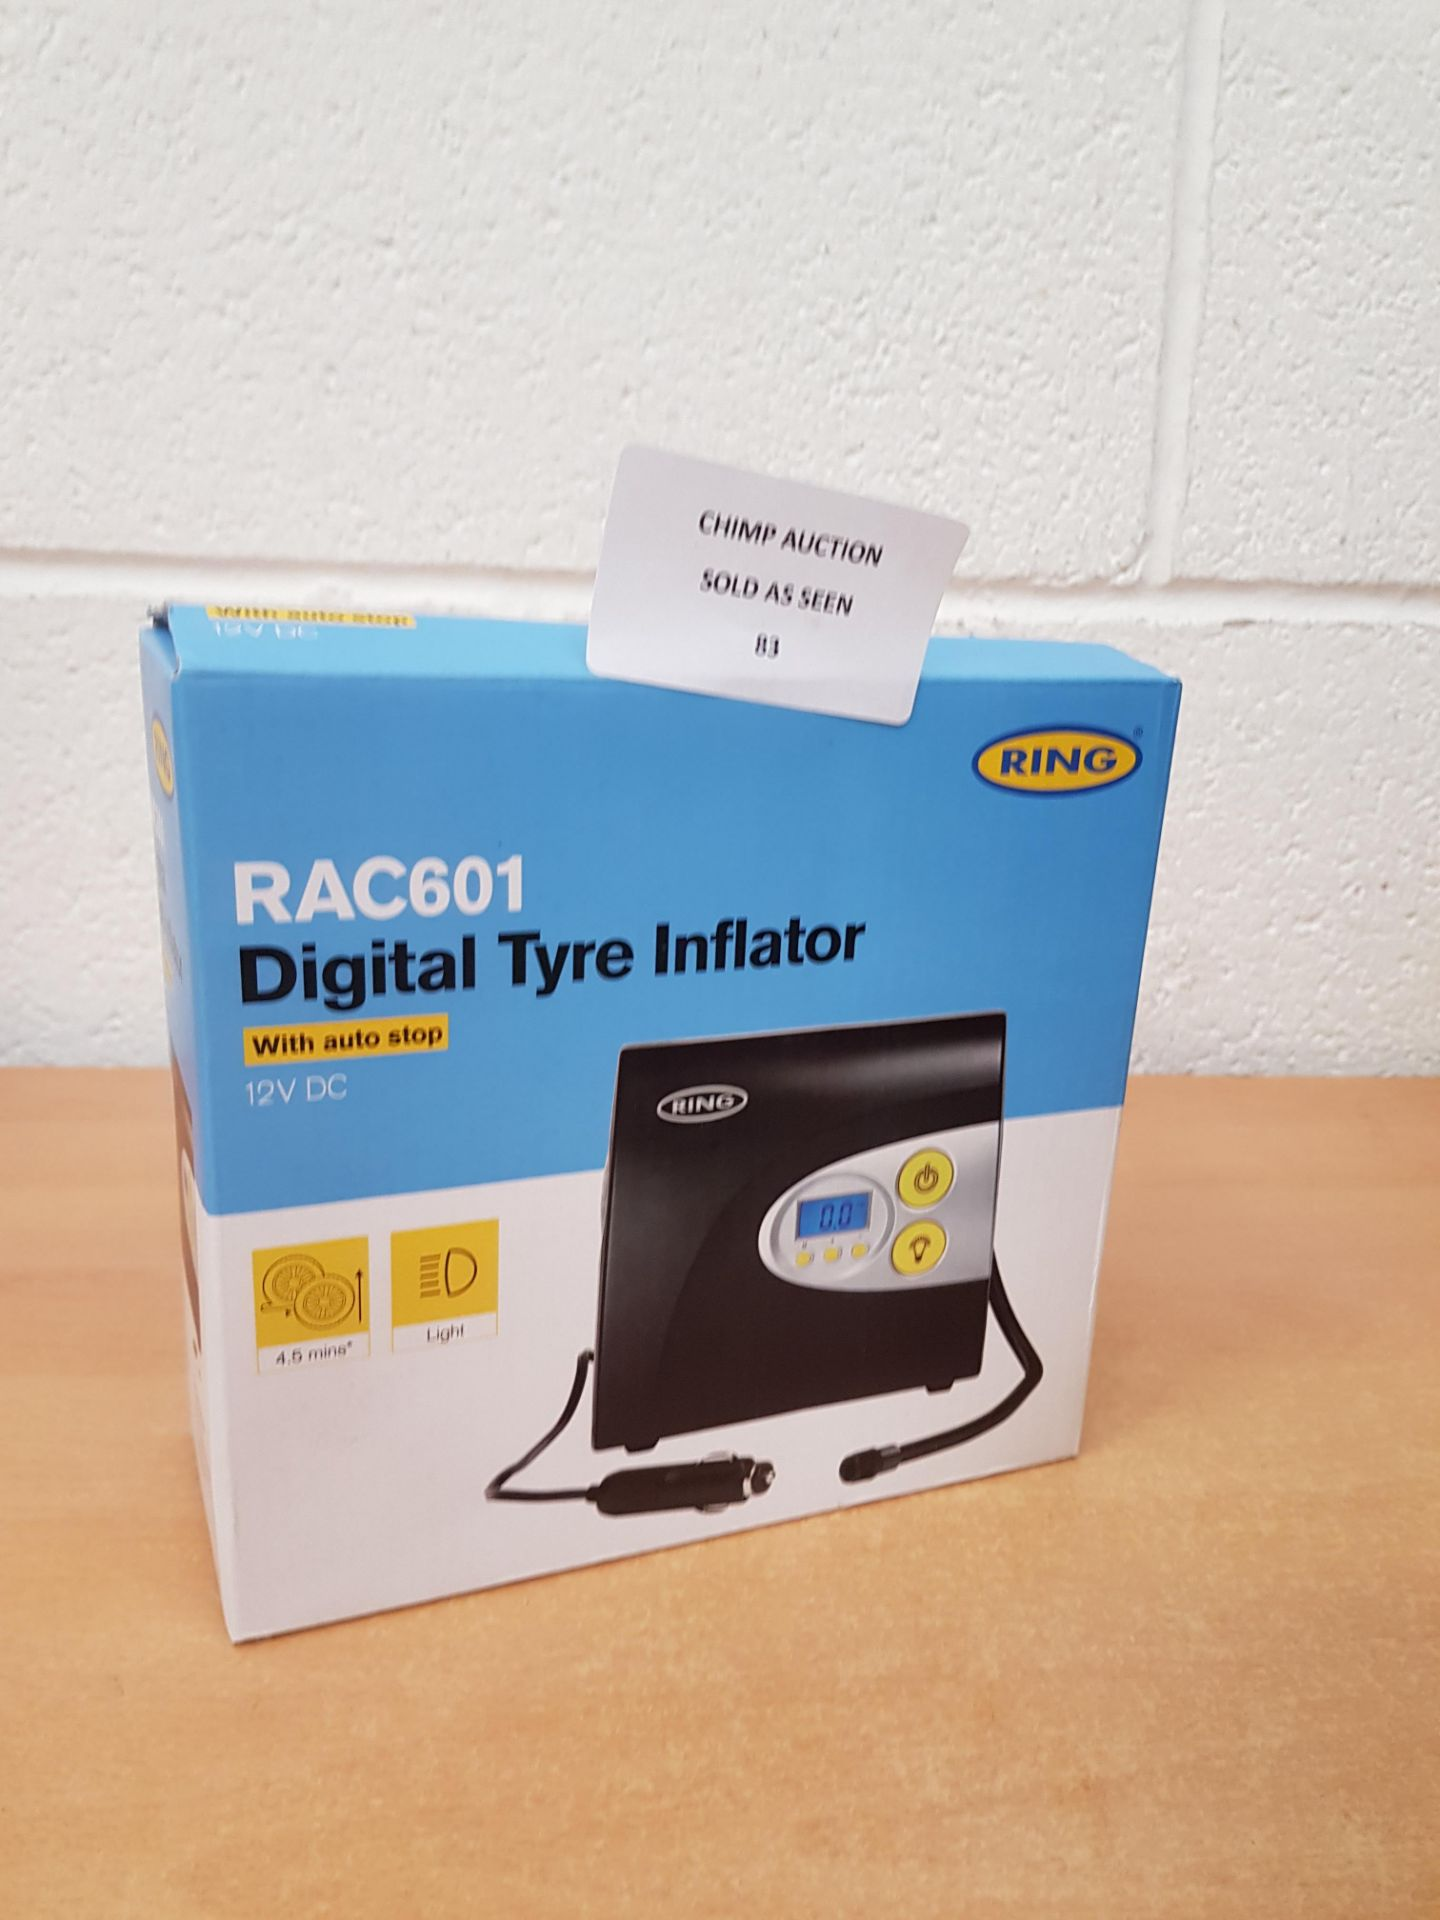 Lotto 83 - Ring RAC601 Digital Tyre Inflator